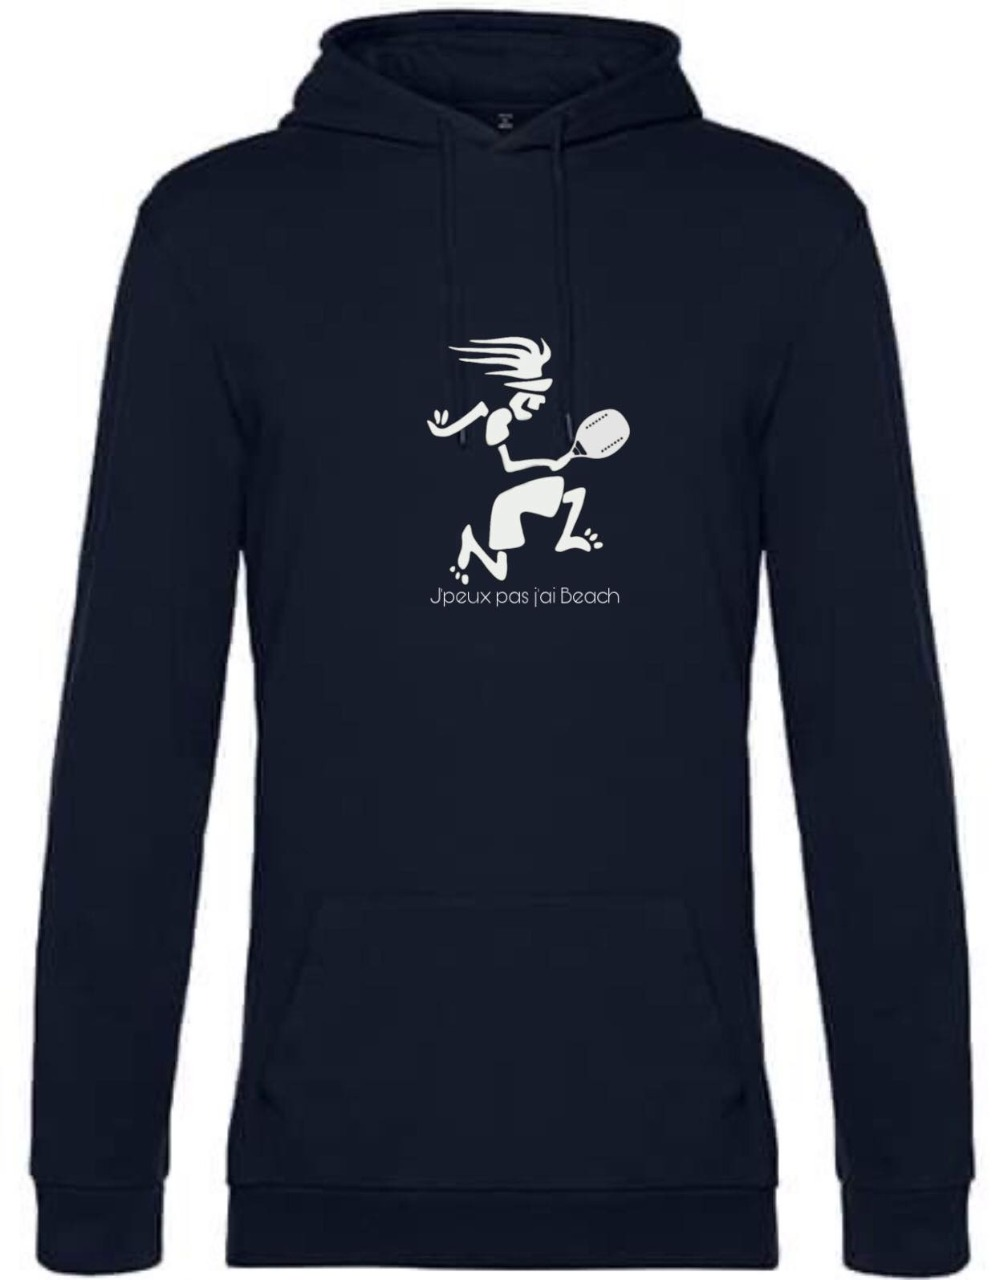 Sweat-shirt Beach Tennis Homme J'peux pas j'ai Beach